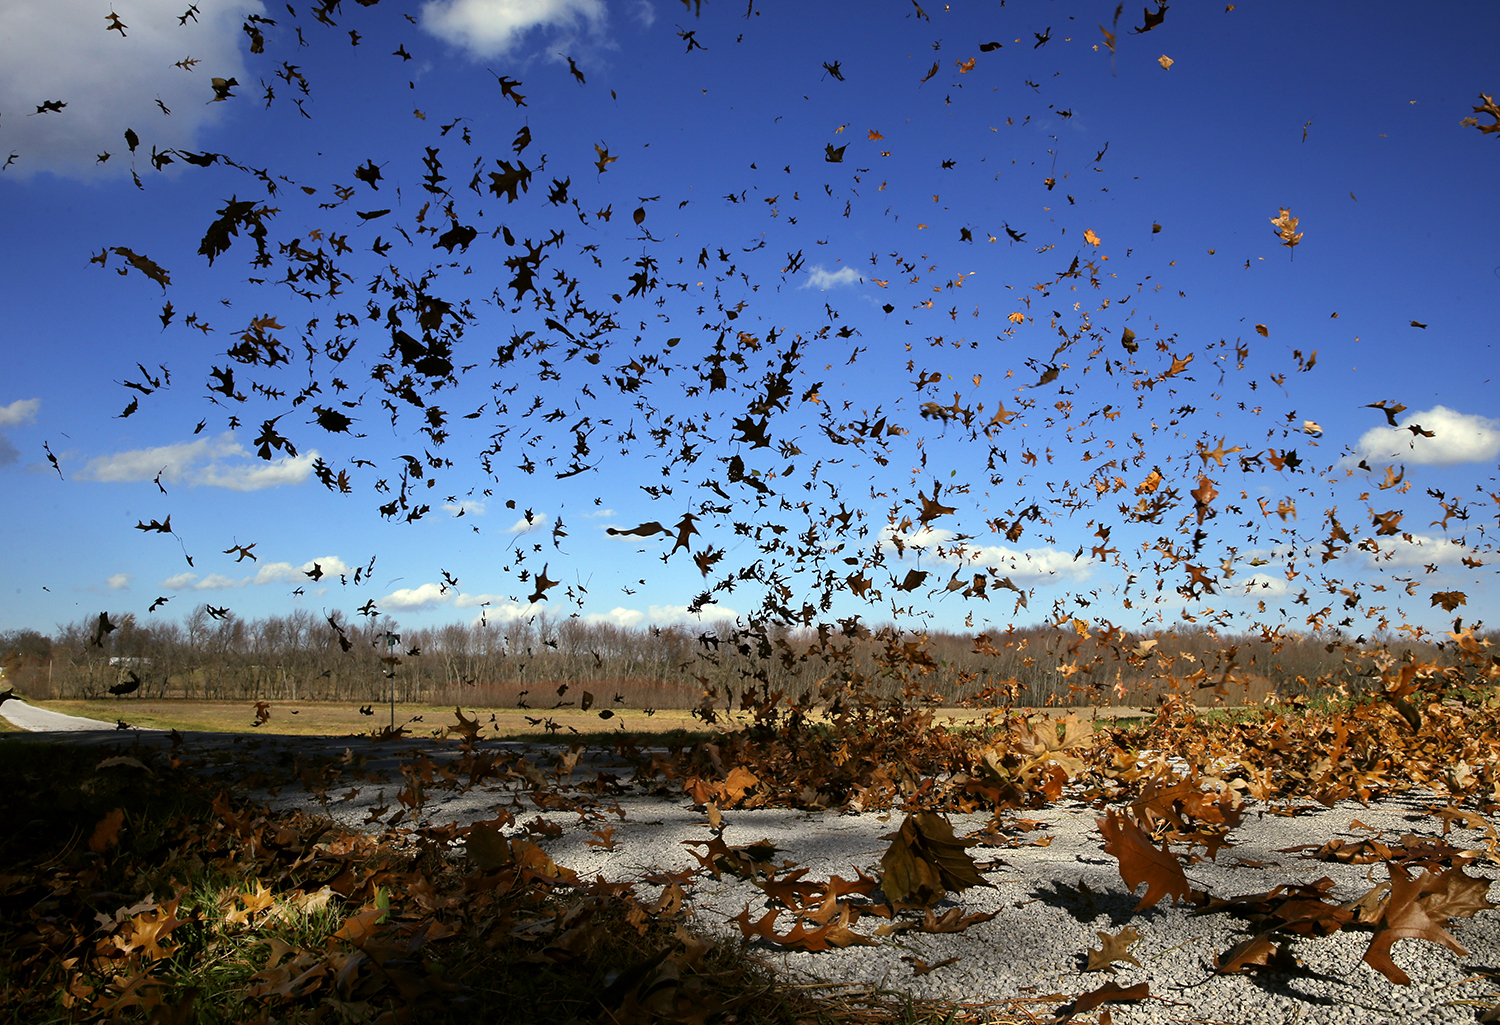 Leaves swirl into the air near Buckhart Road as high winds blast across the region Sunday, Nov. 17, 2013. Ted Schurter/The State Journal-Register